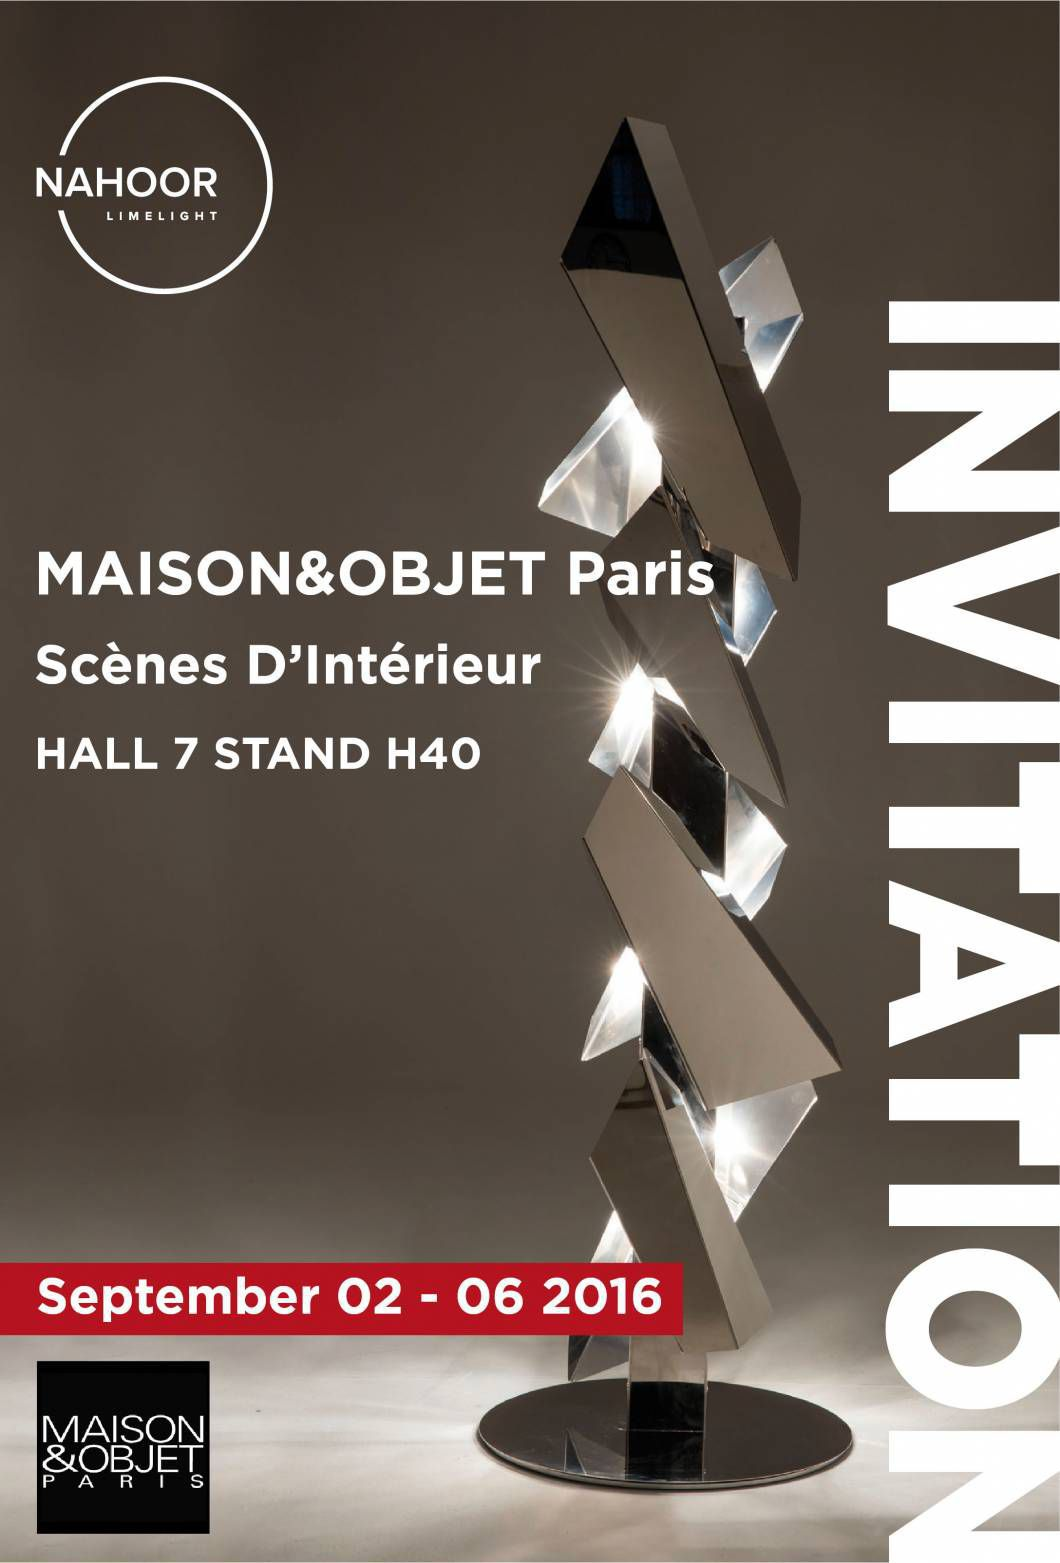 Nahoor at Maison&Objet Paris